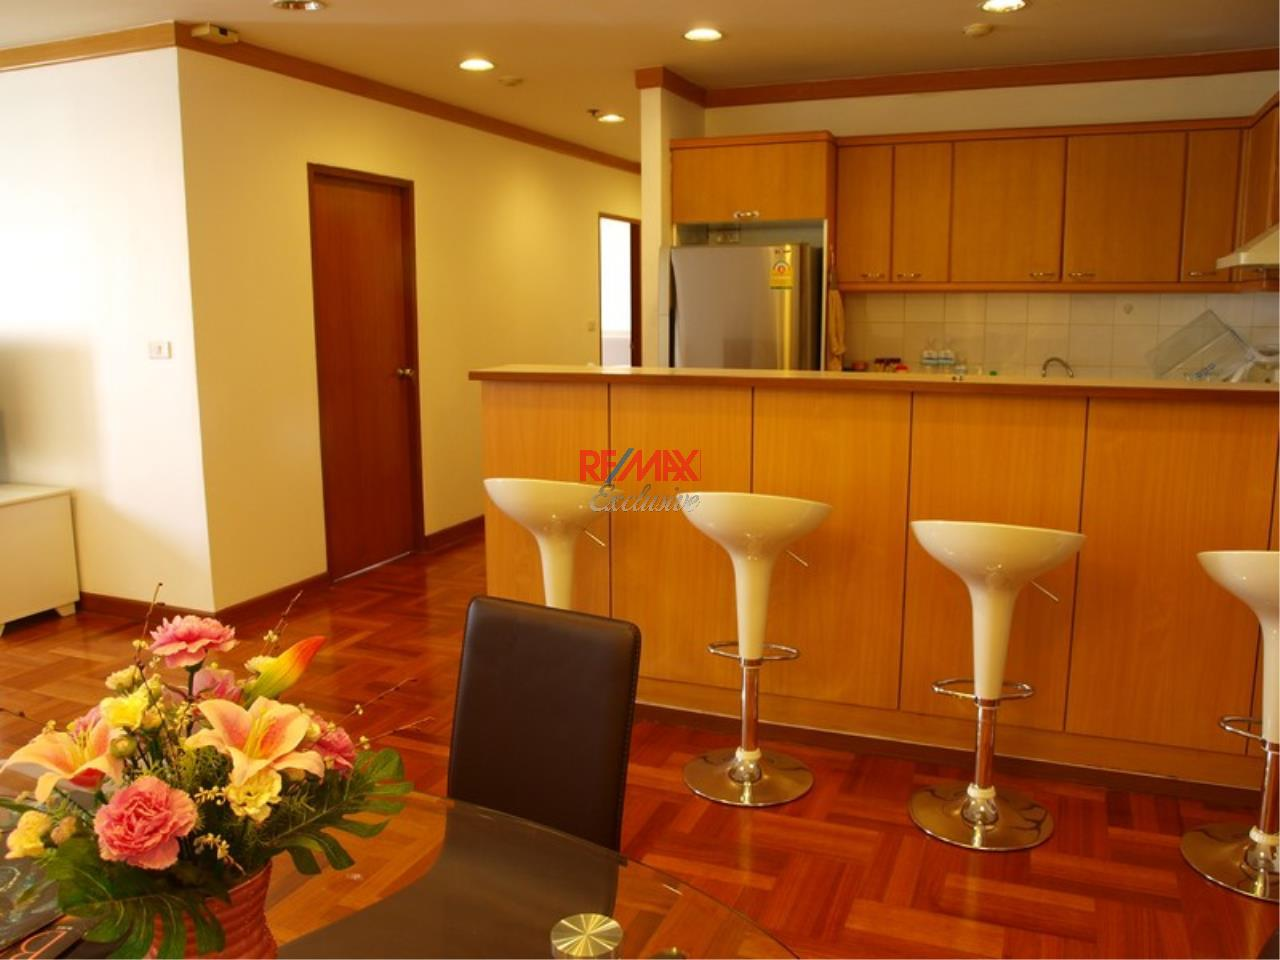 RE/MAX Exclusive Agency's Liberty Park II 3 Bedrooms, 2 Bathrooms 118 SQM For Sale With Tenant!! 3